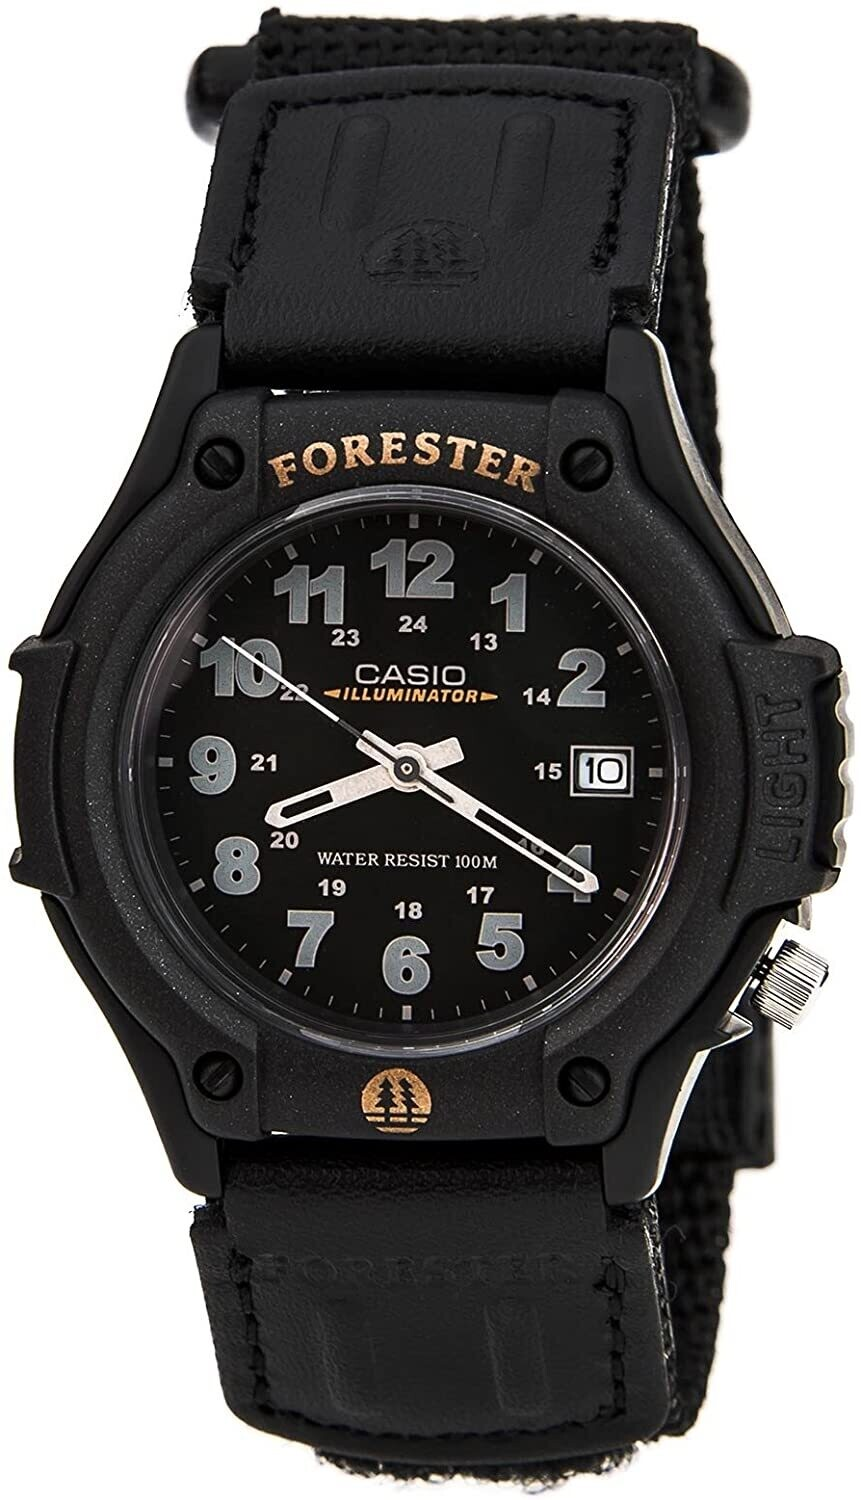 reloj deportivo hombre Casio Forester FT-500WVB-1B water resist Luz Led